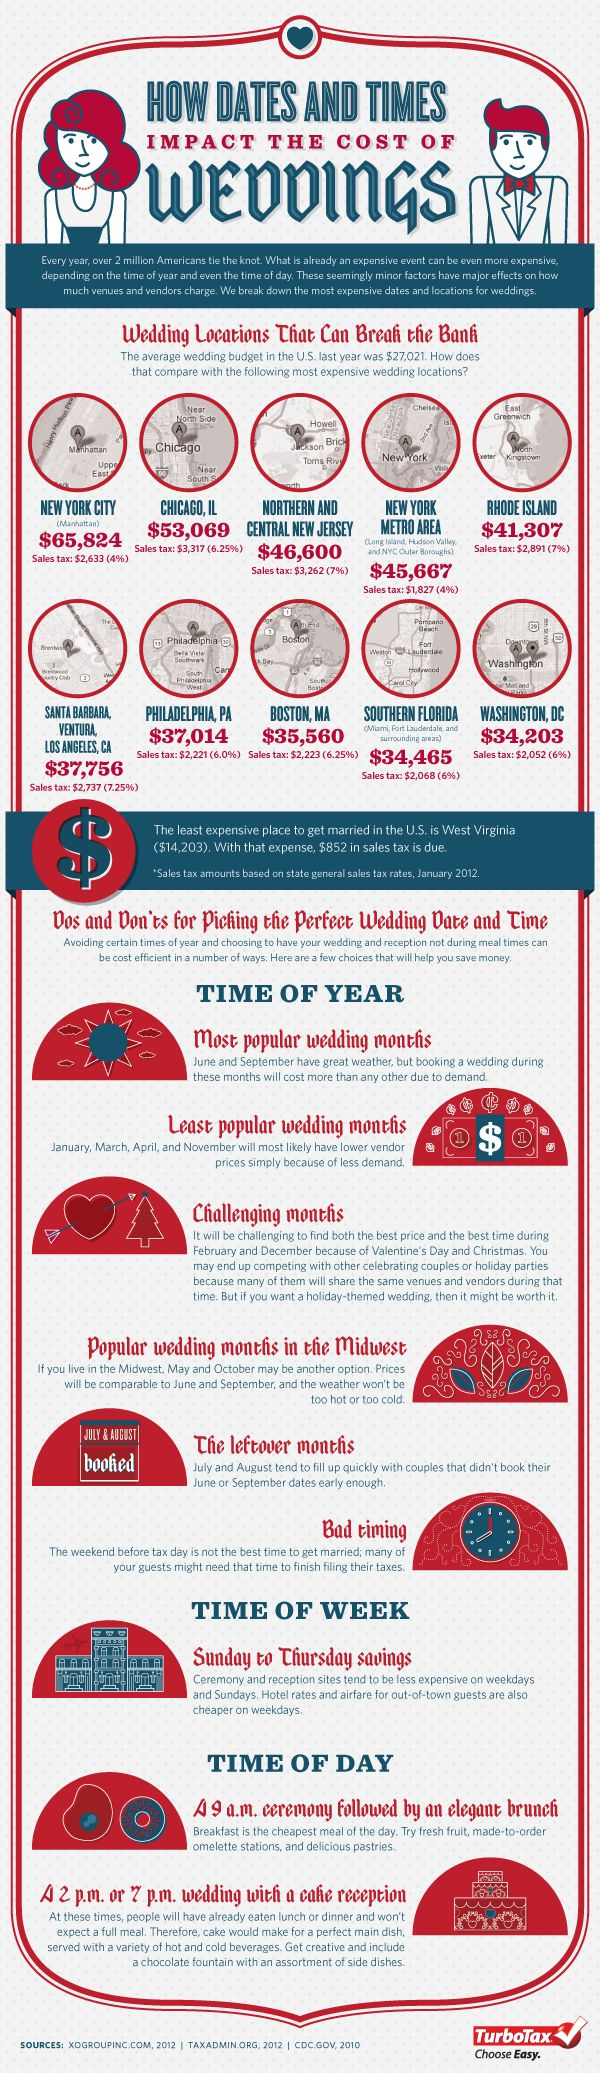 Dates,Times and Cost of Weddings - Interesting Fact: Didn't know our wedding month was a popular one in the midwest.